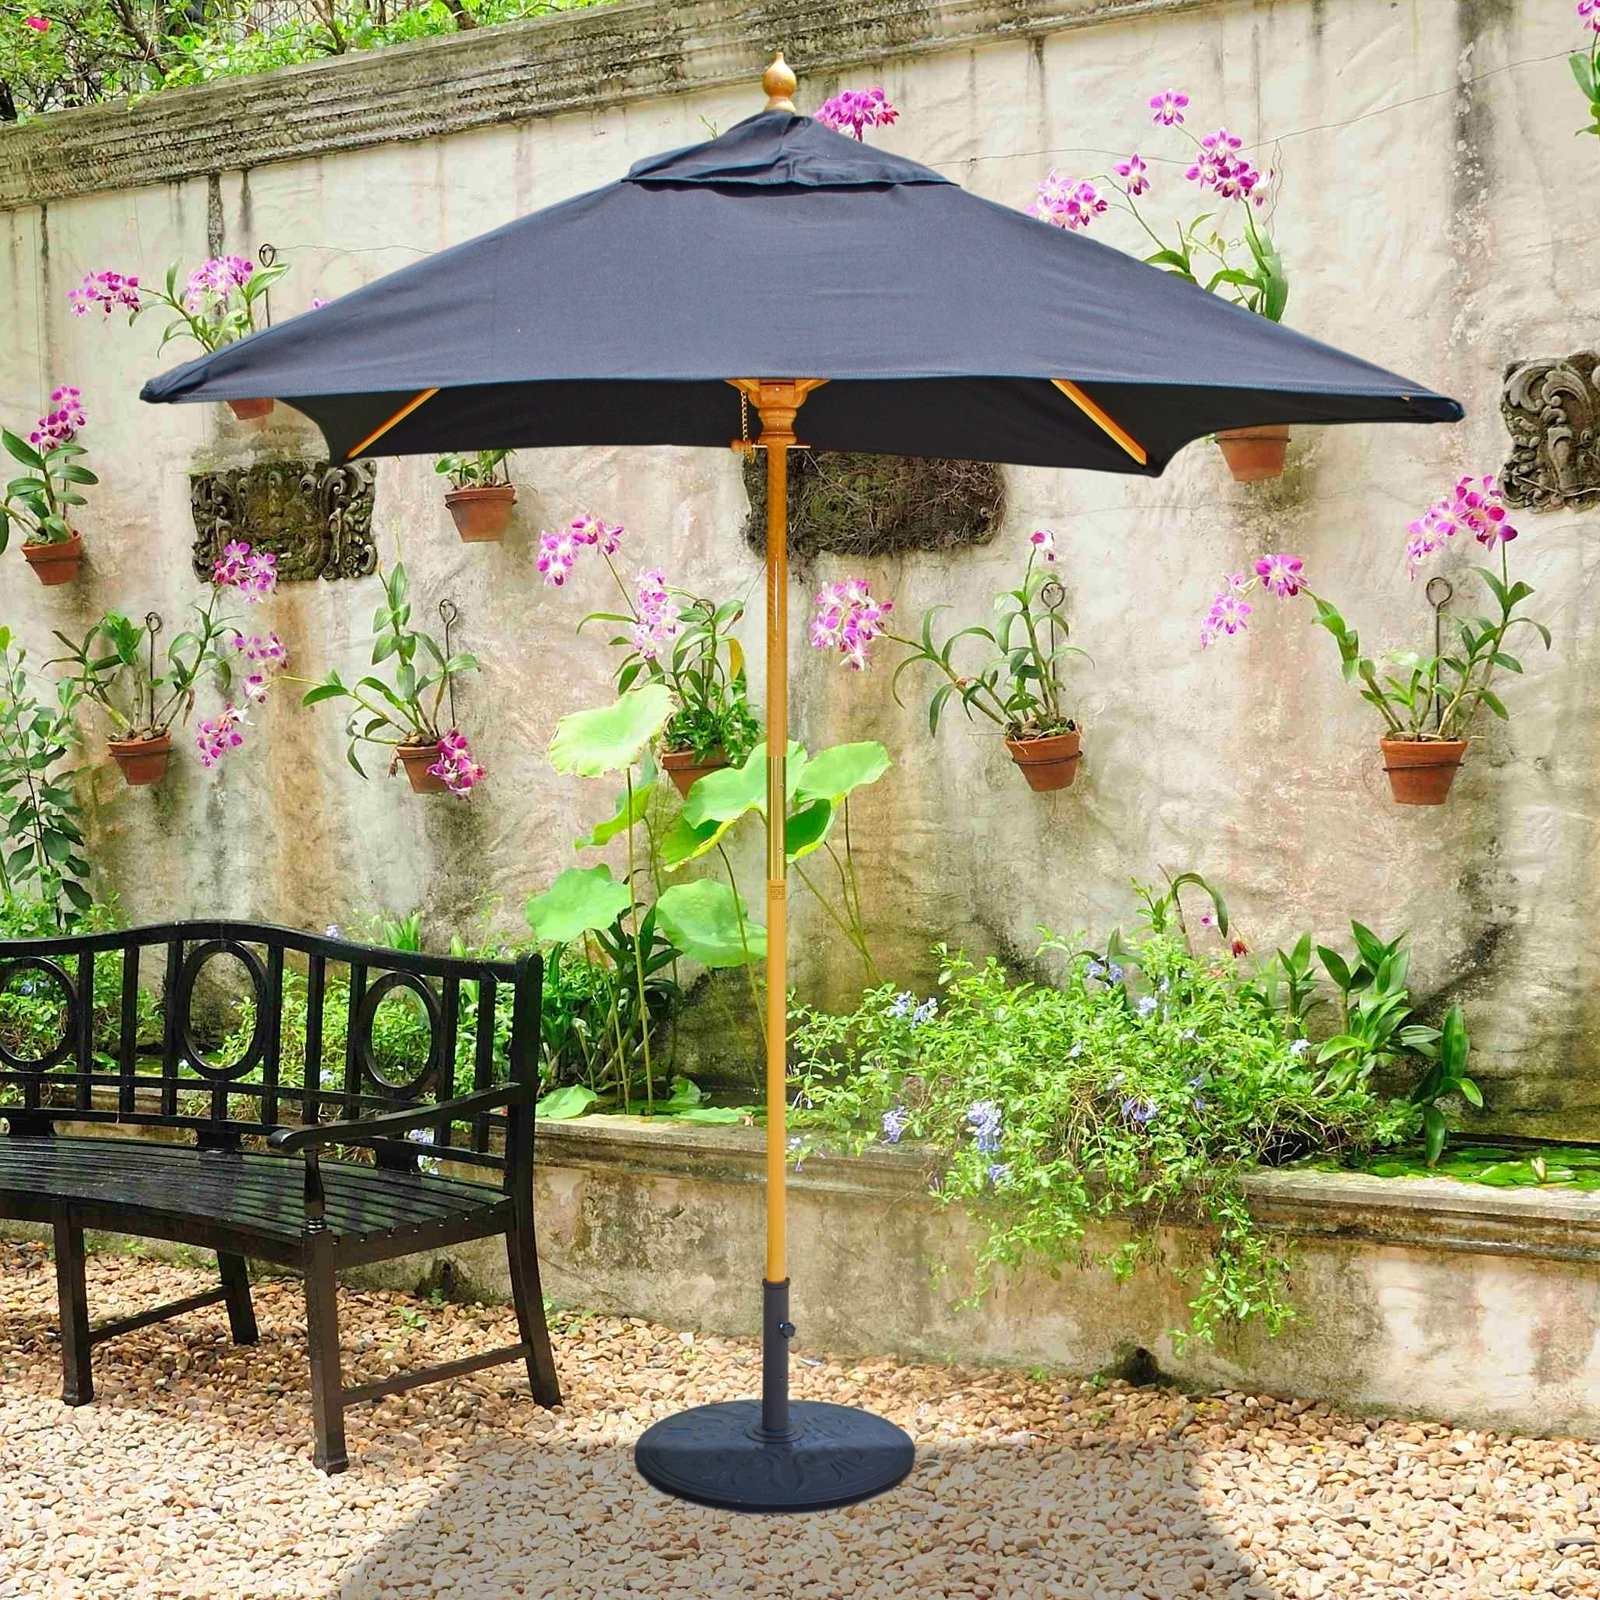 Galtech Sunbrella 6 X 6 Ft Wood Square Patio Umbrella Patio Within Recent Square Sunbrella Patio Umbrellas (View 16 of 20)